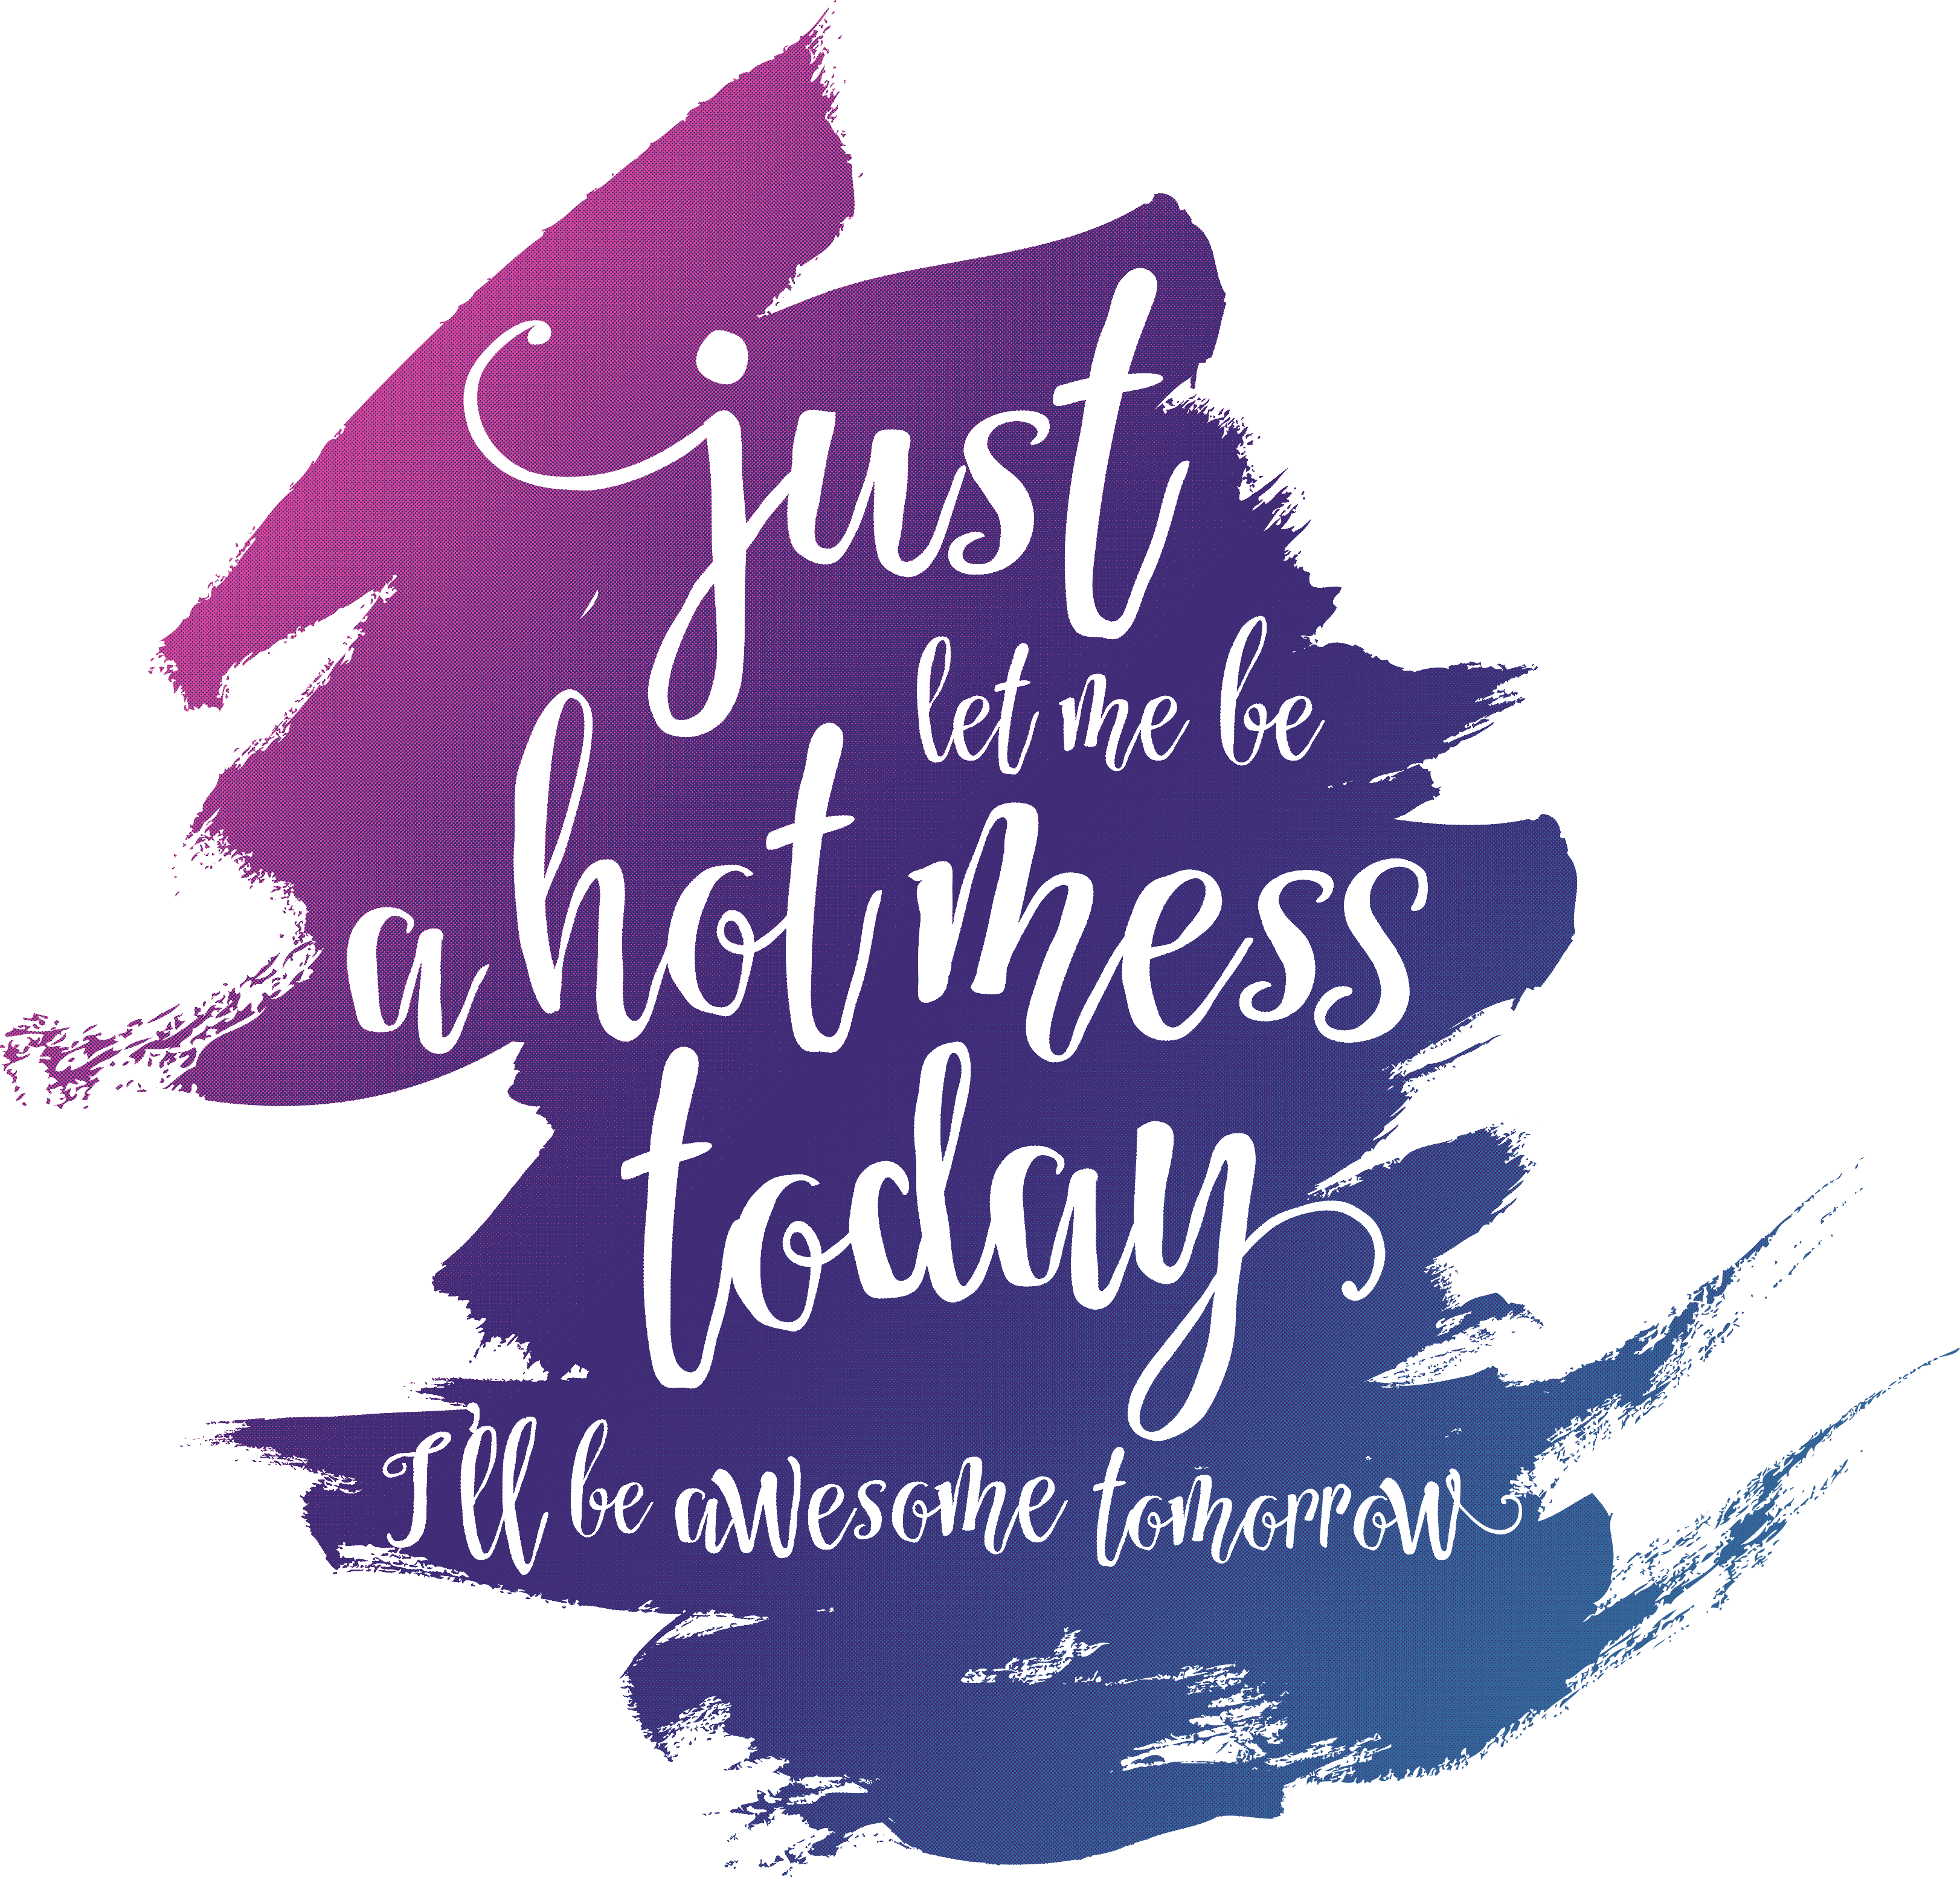 Quotes To Get You Through The Day Hot Mess Today Awesome Tomorrow  Quote Typography